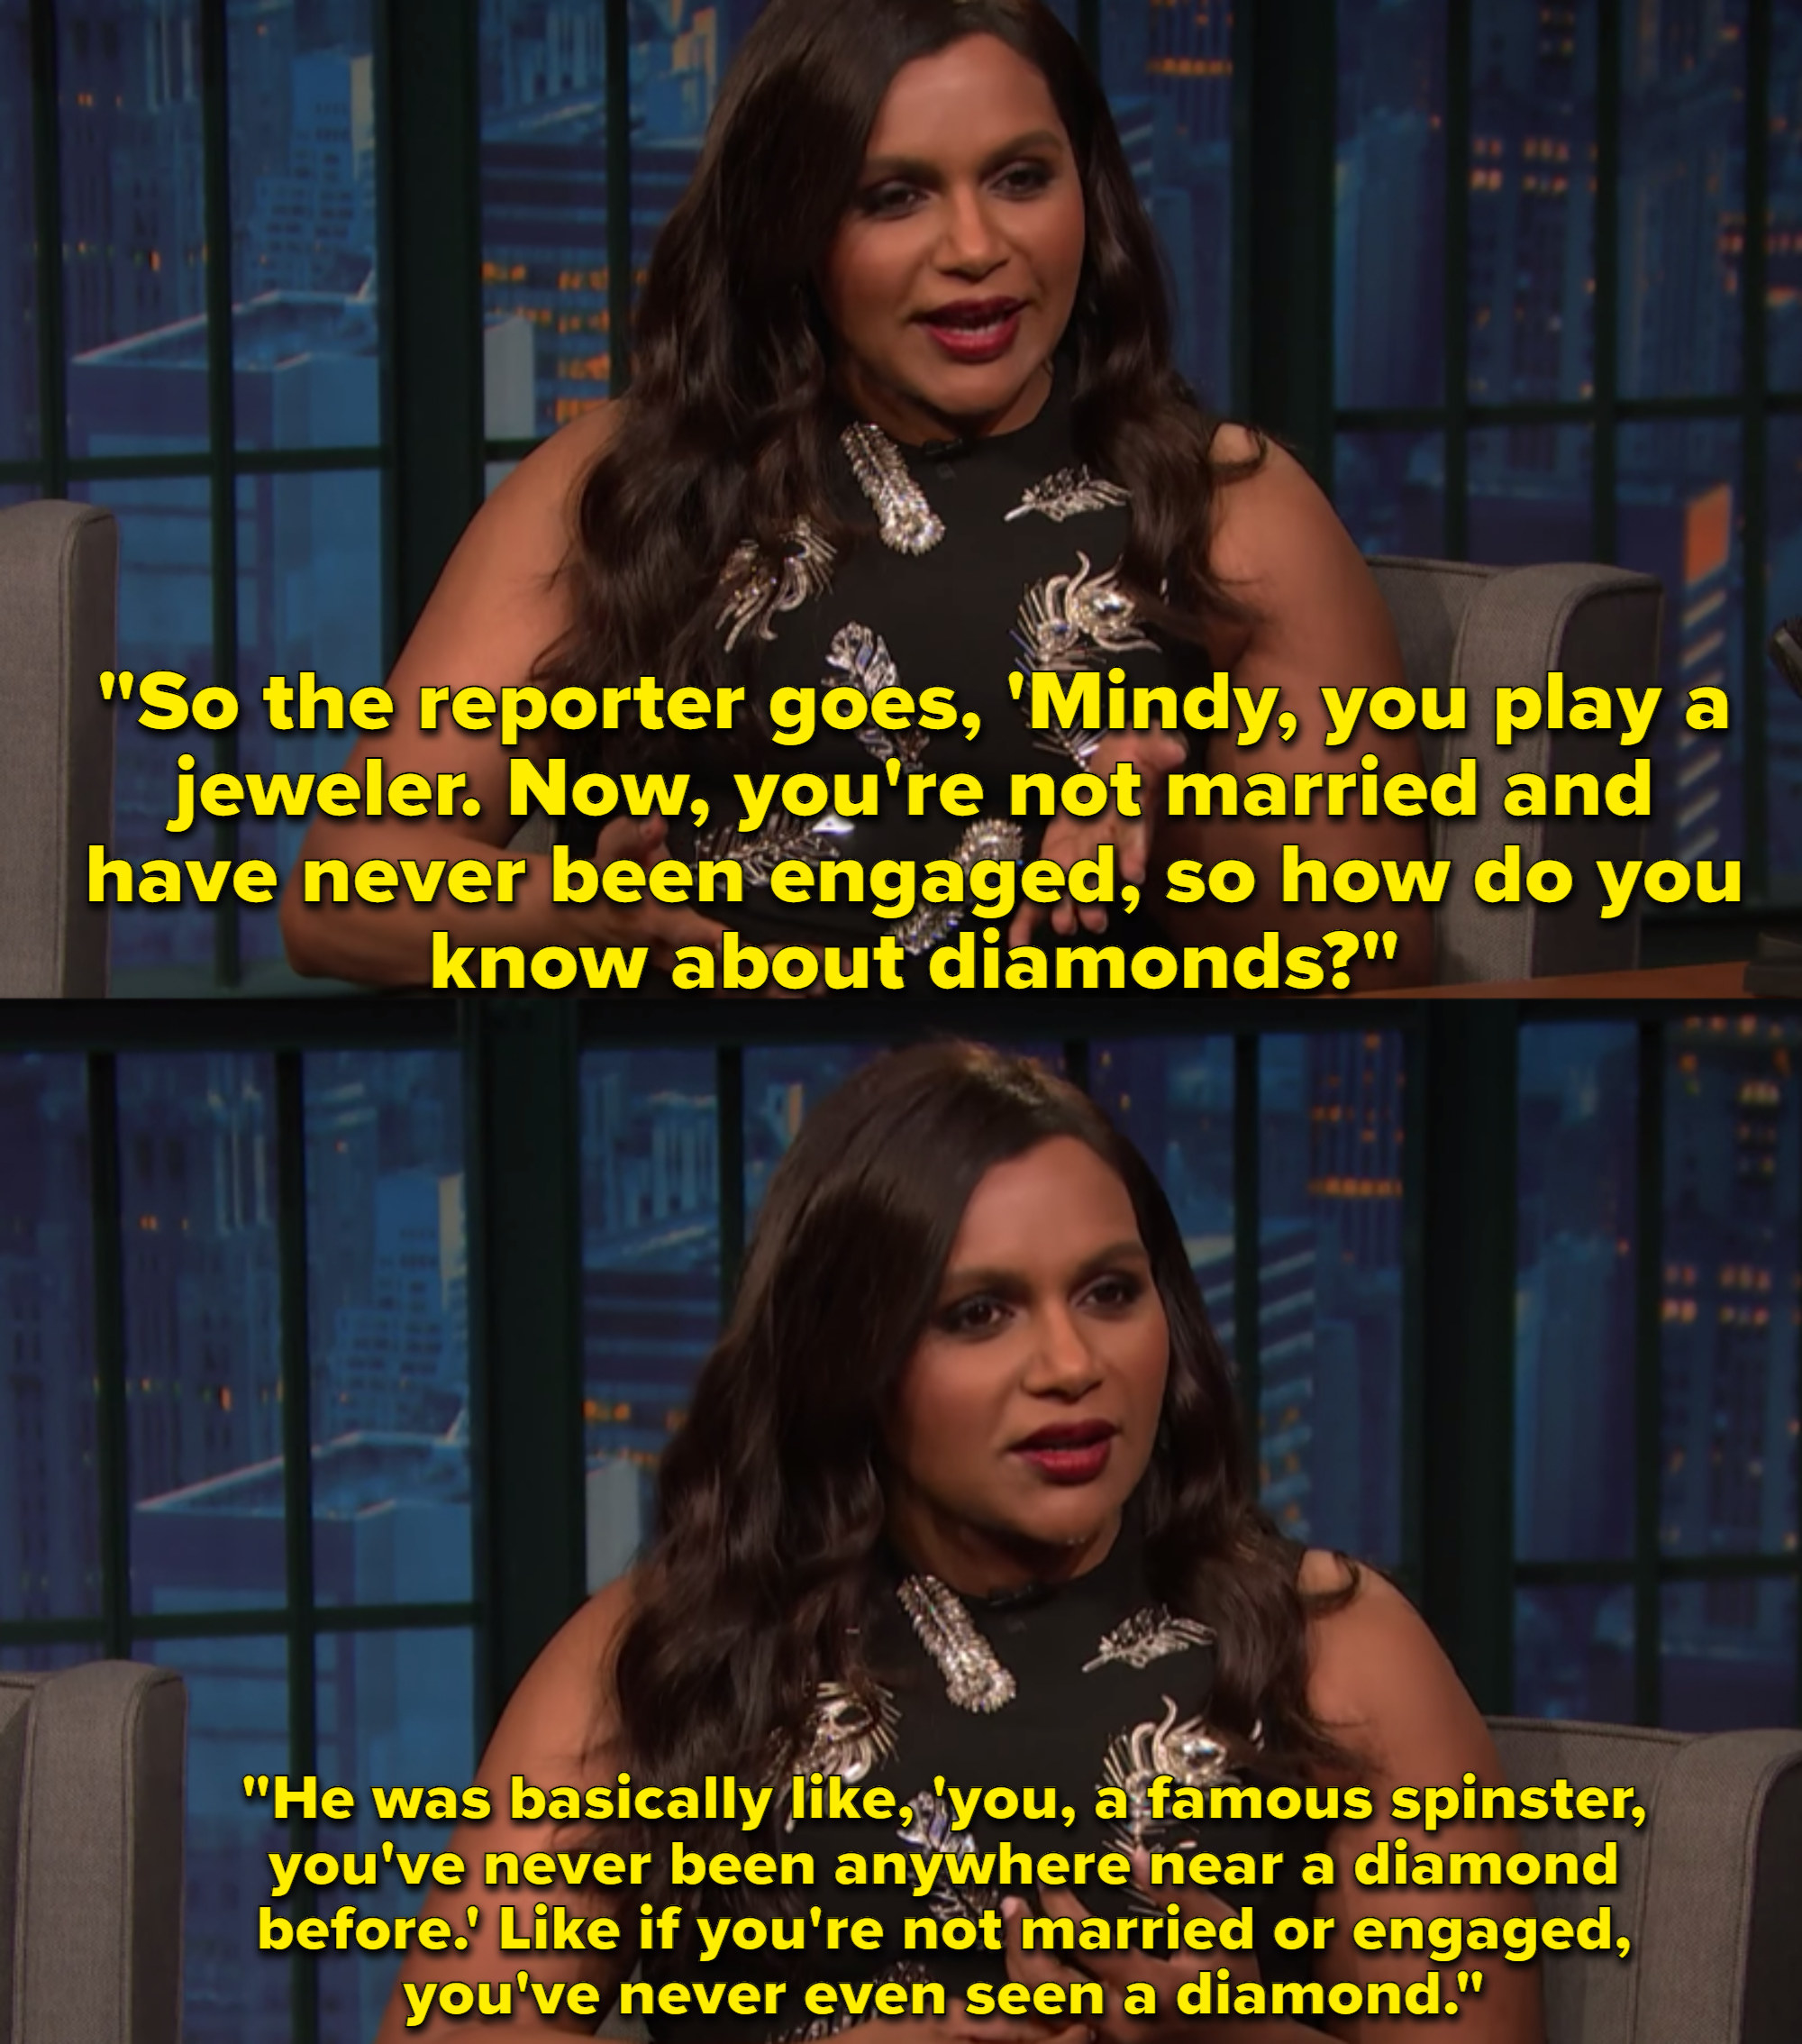 Mindy Kaling, wearing a black dress with silver feathers on it, recounts an encounter with a sexist reporter during a press conference.